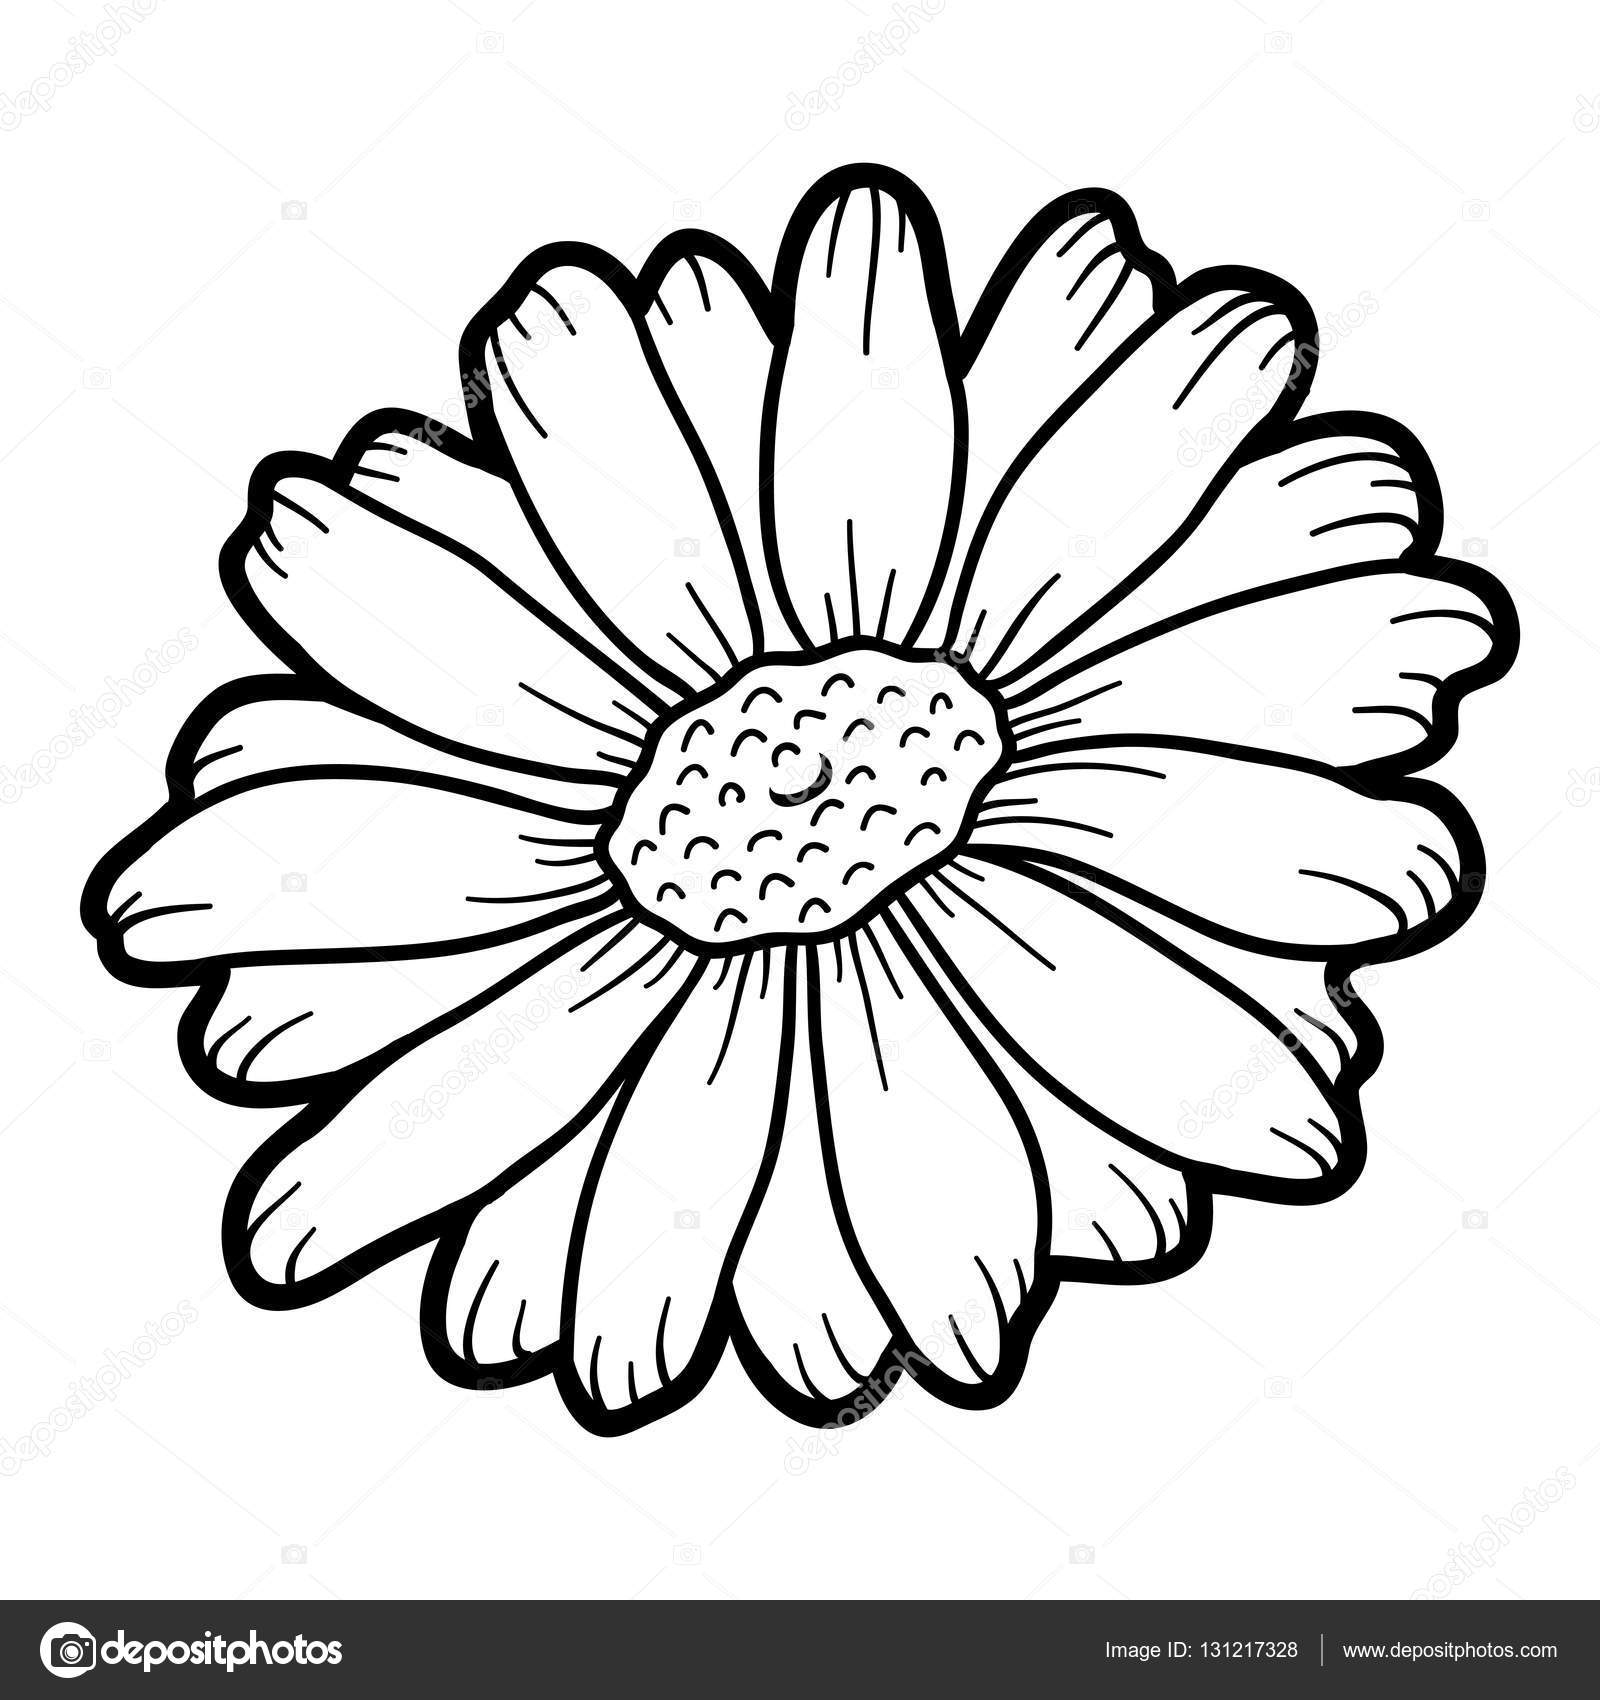 Chamomile coloring #4, Download drawings